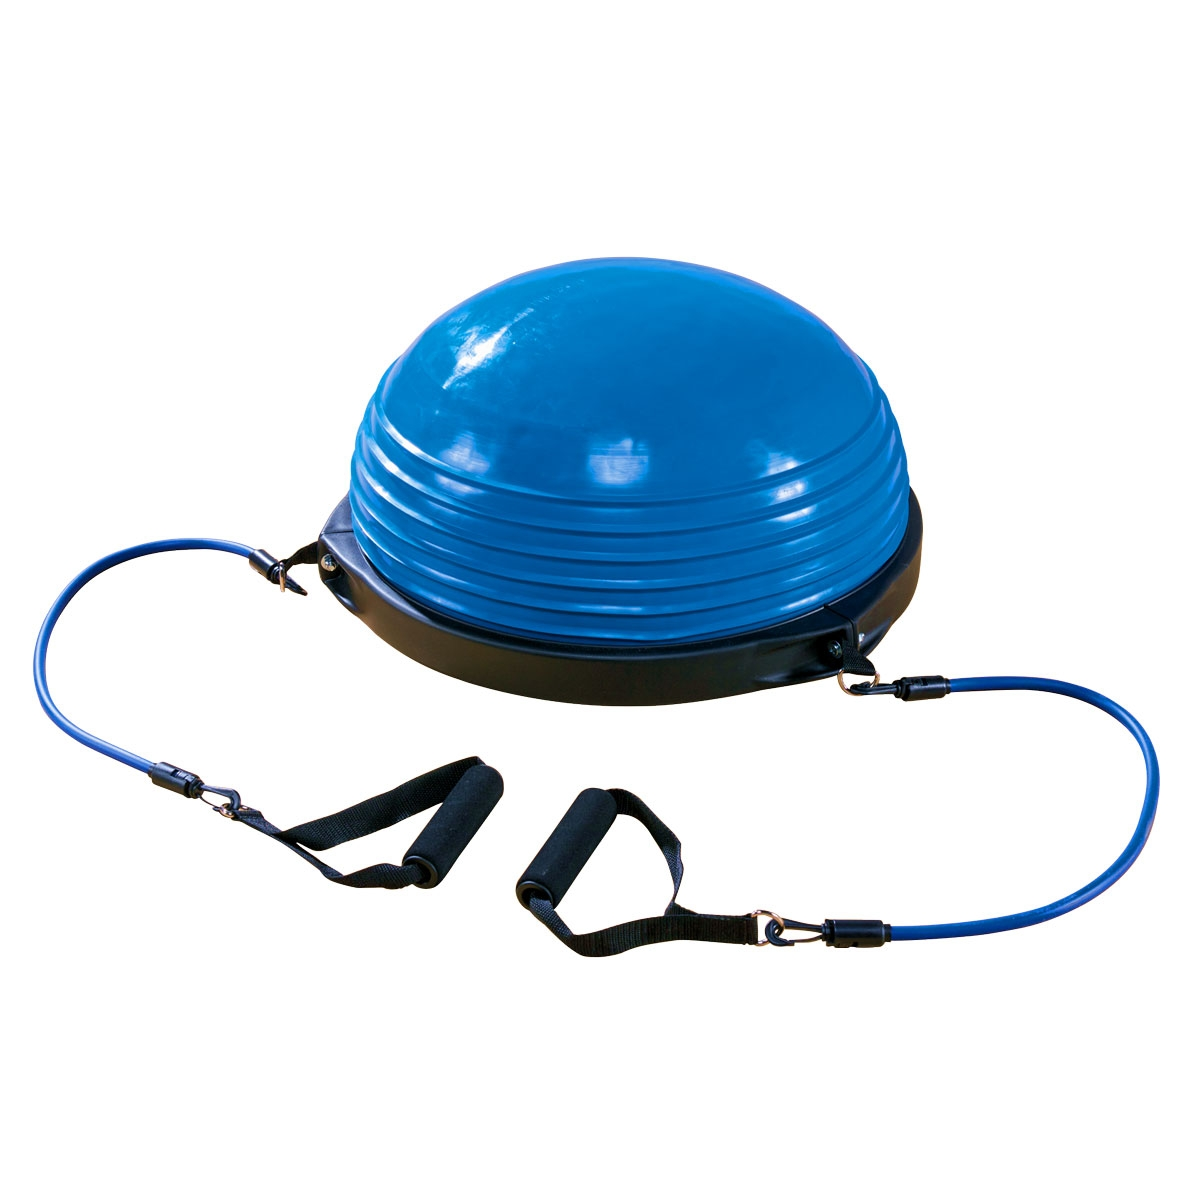 yoga balance dome trainer in blue with arm straps